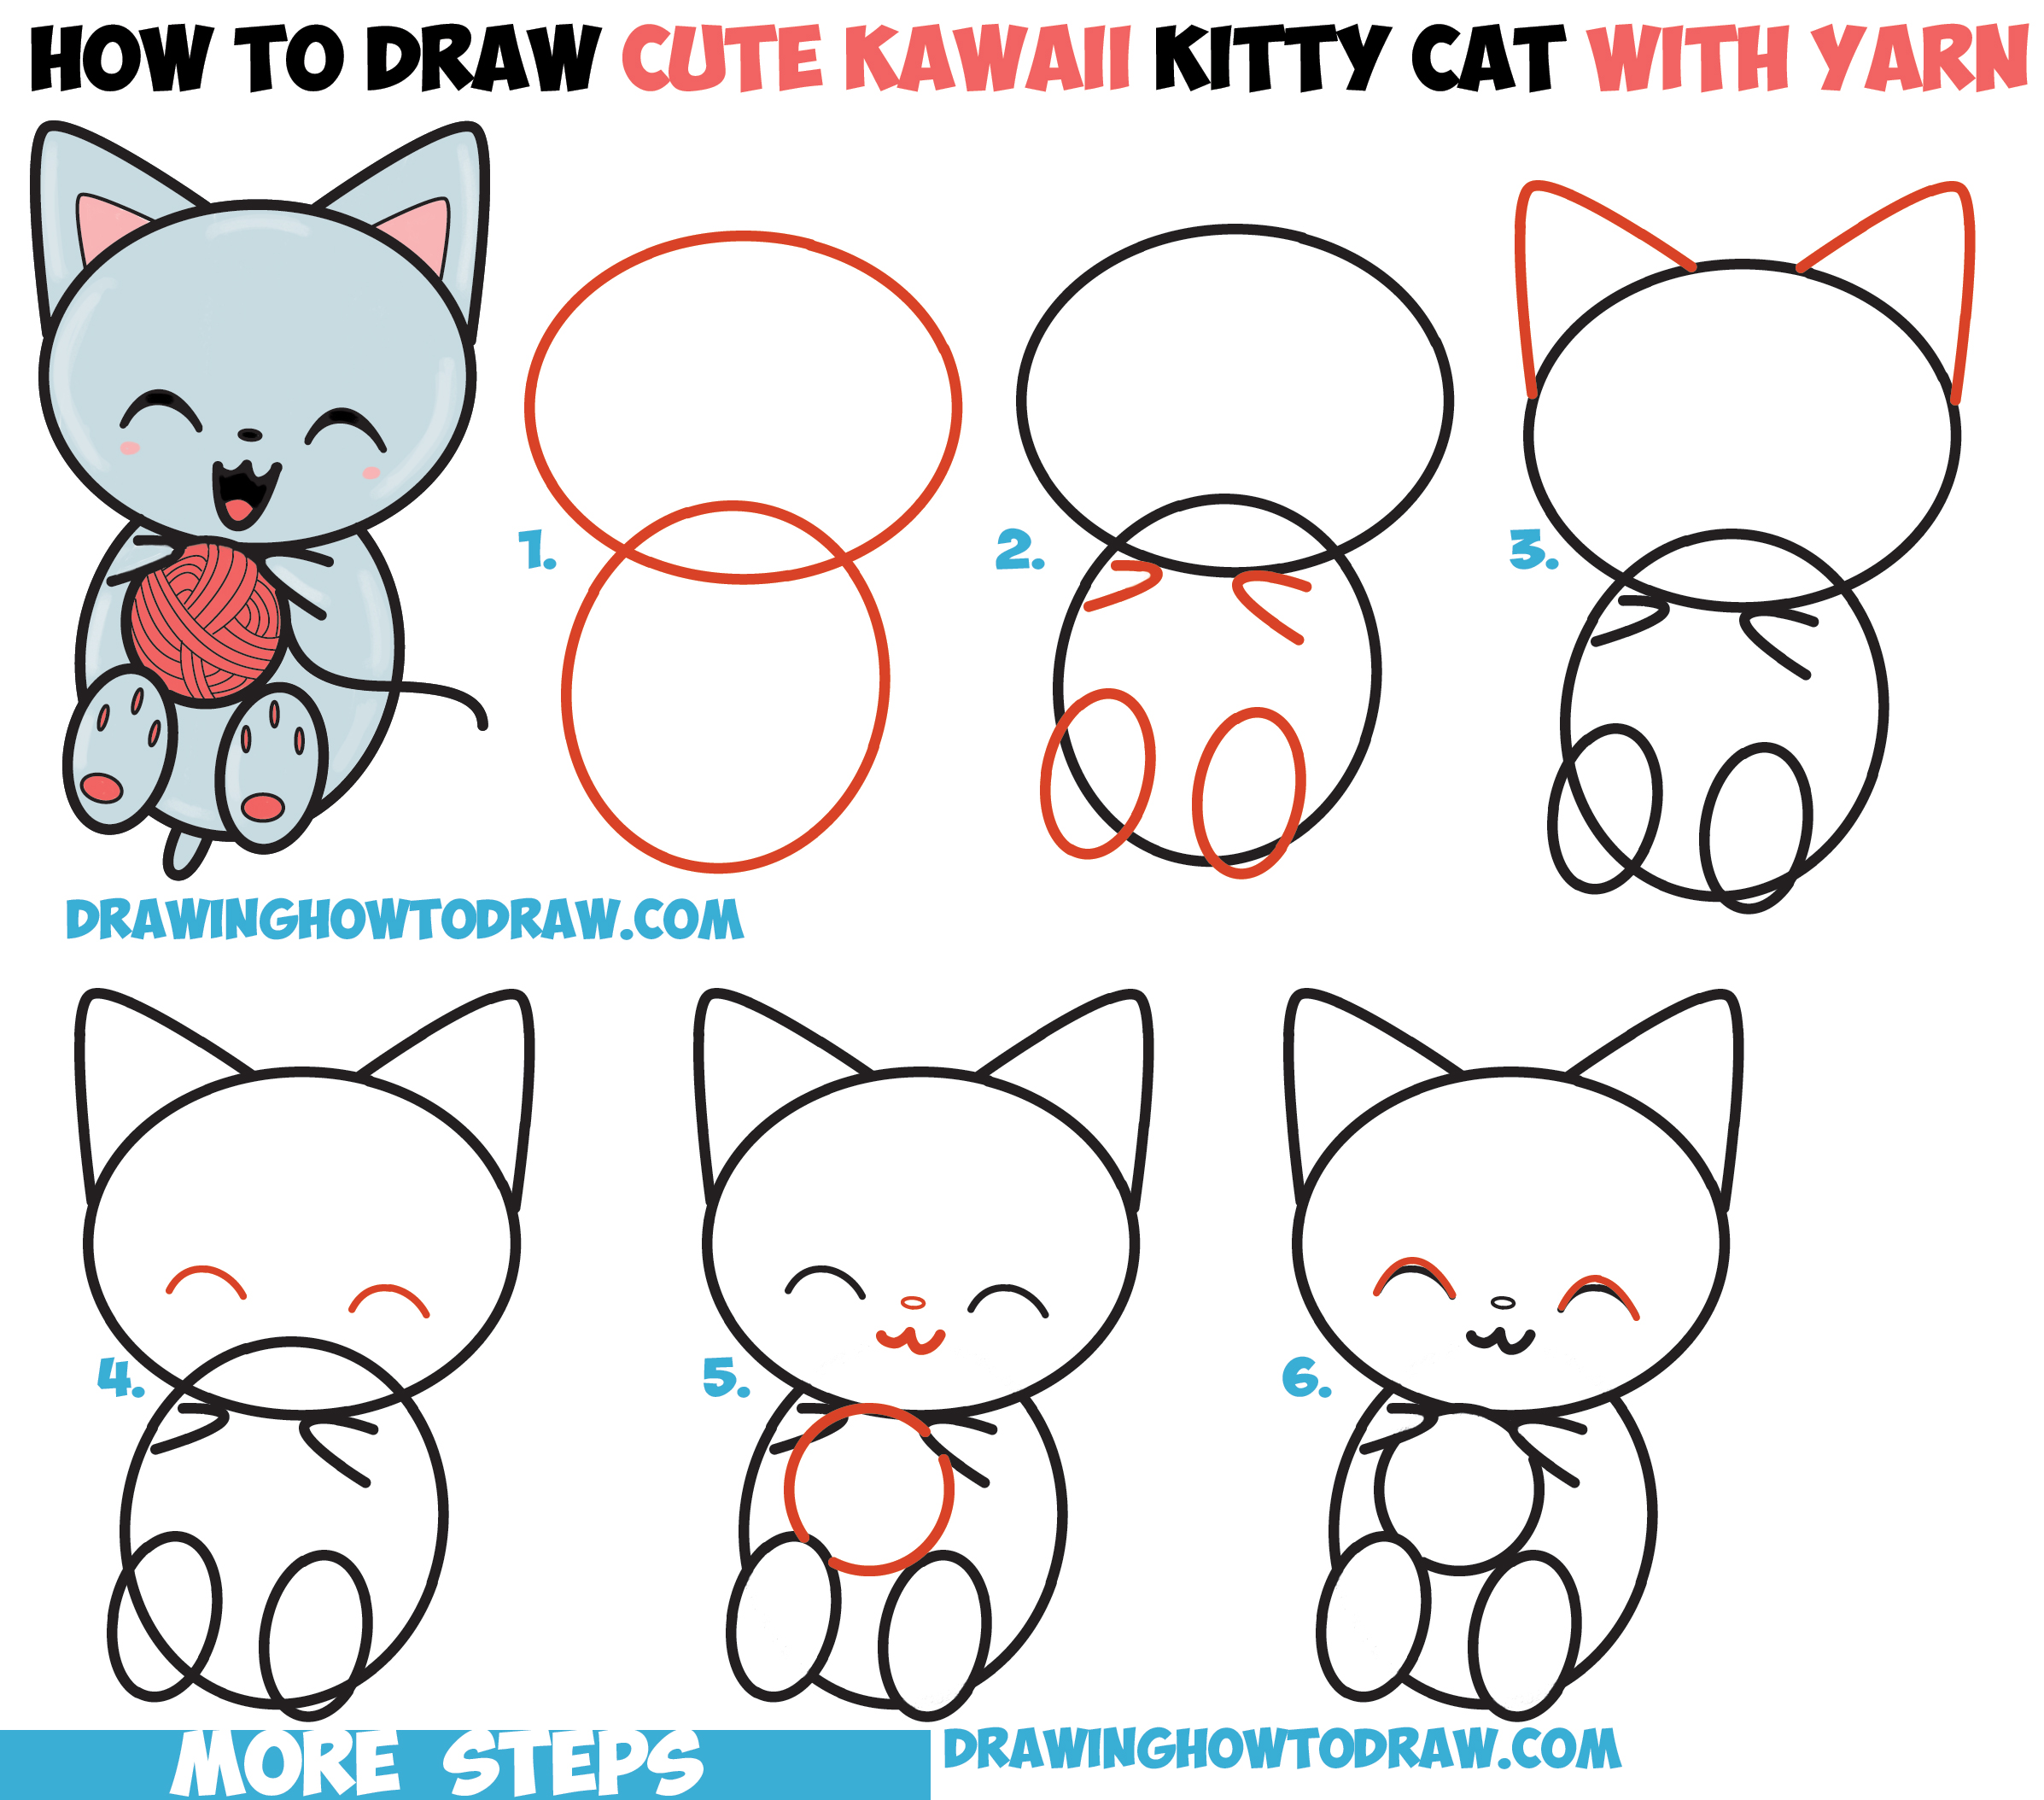 How To Draw Cute Kawaii Kitten Cat Playing With Yarn From Number 8